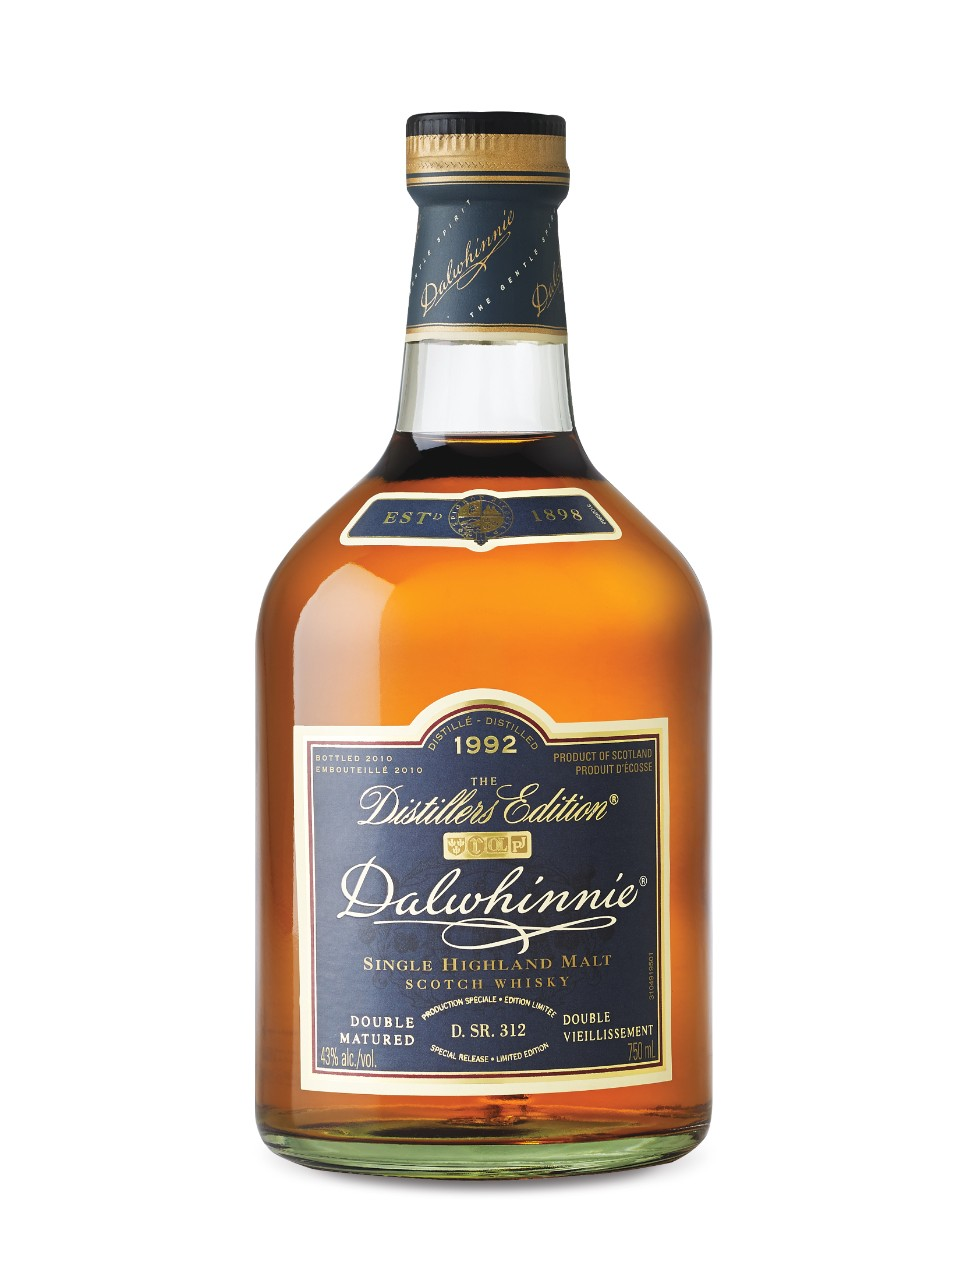 Dalwhinnie Distillers Edition Single Highland Malt Scotch Whisky from LCBO